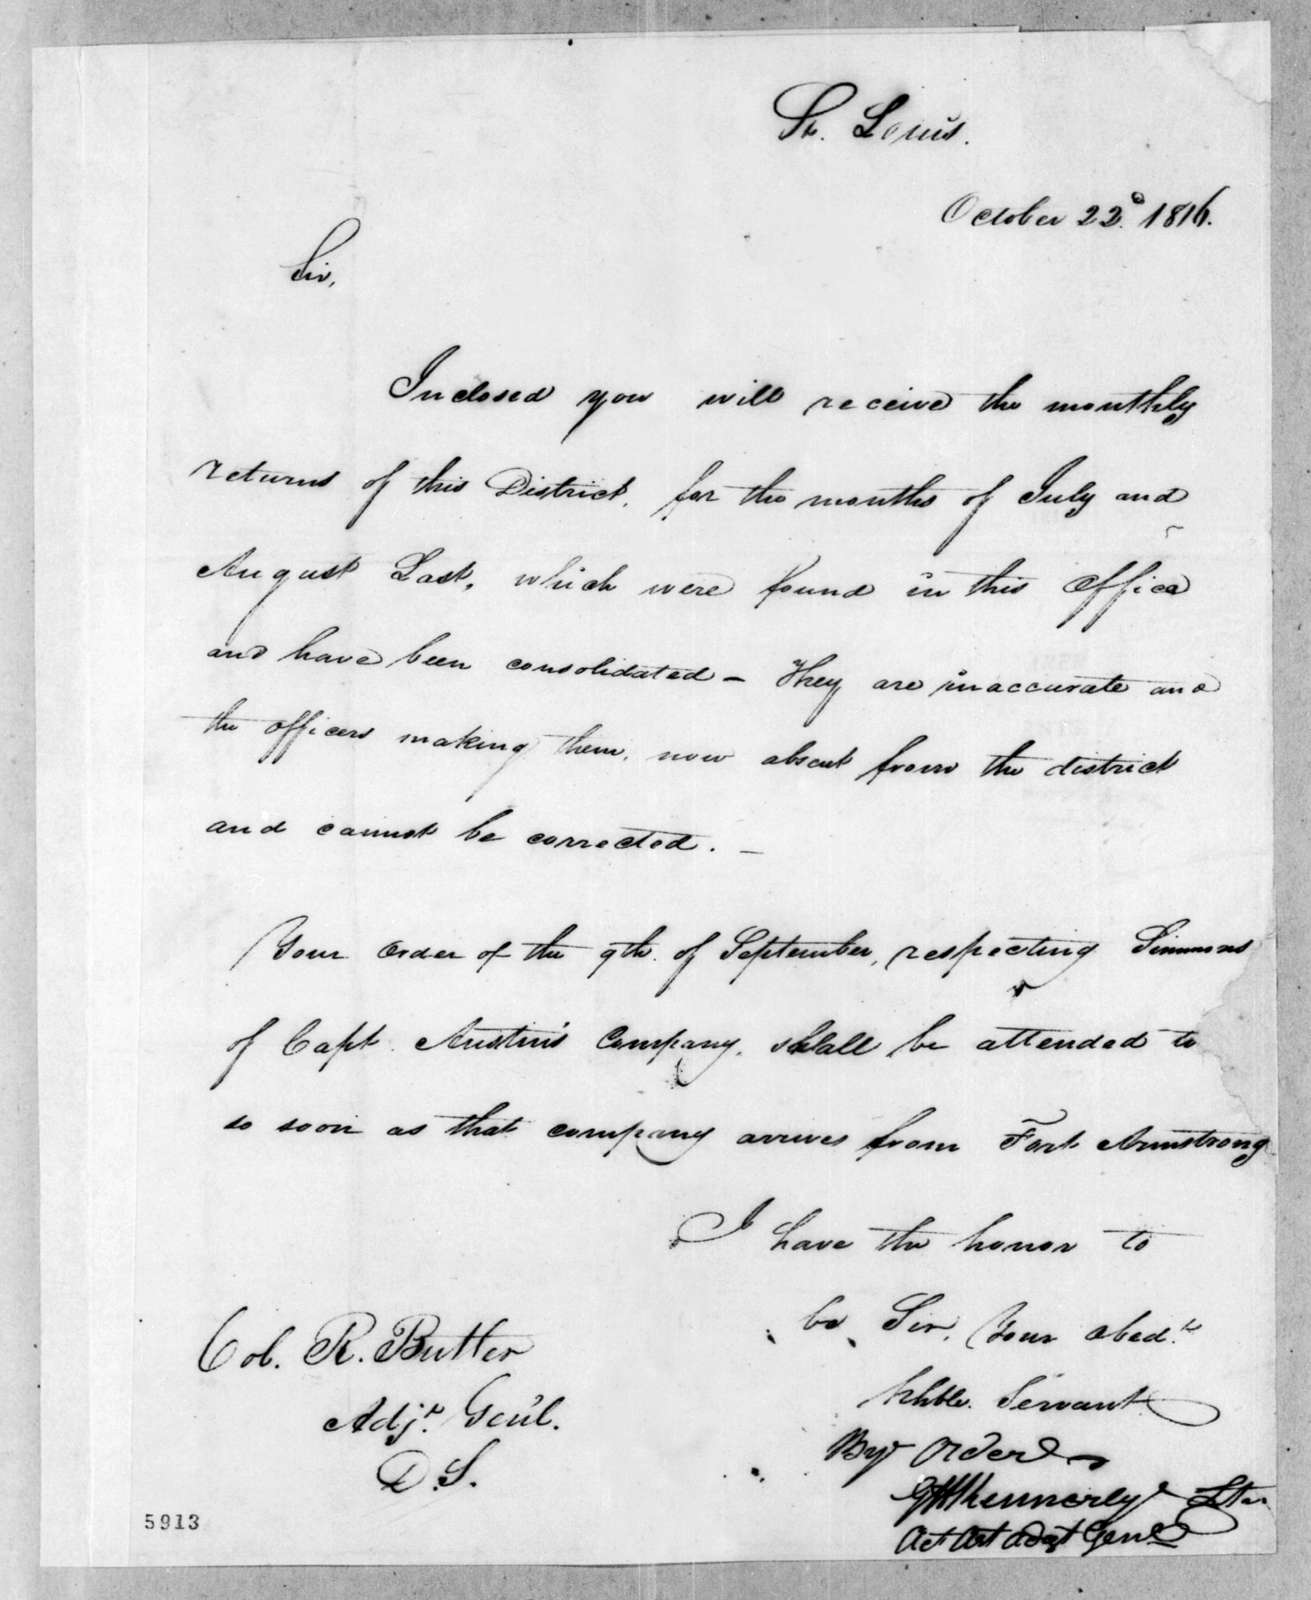 W. Kennedy to Robert Butler, October 22, 1816